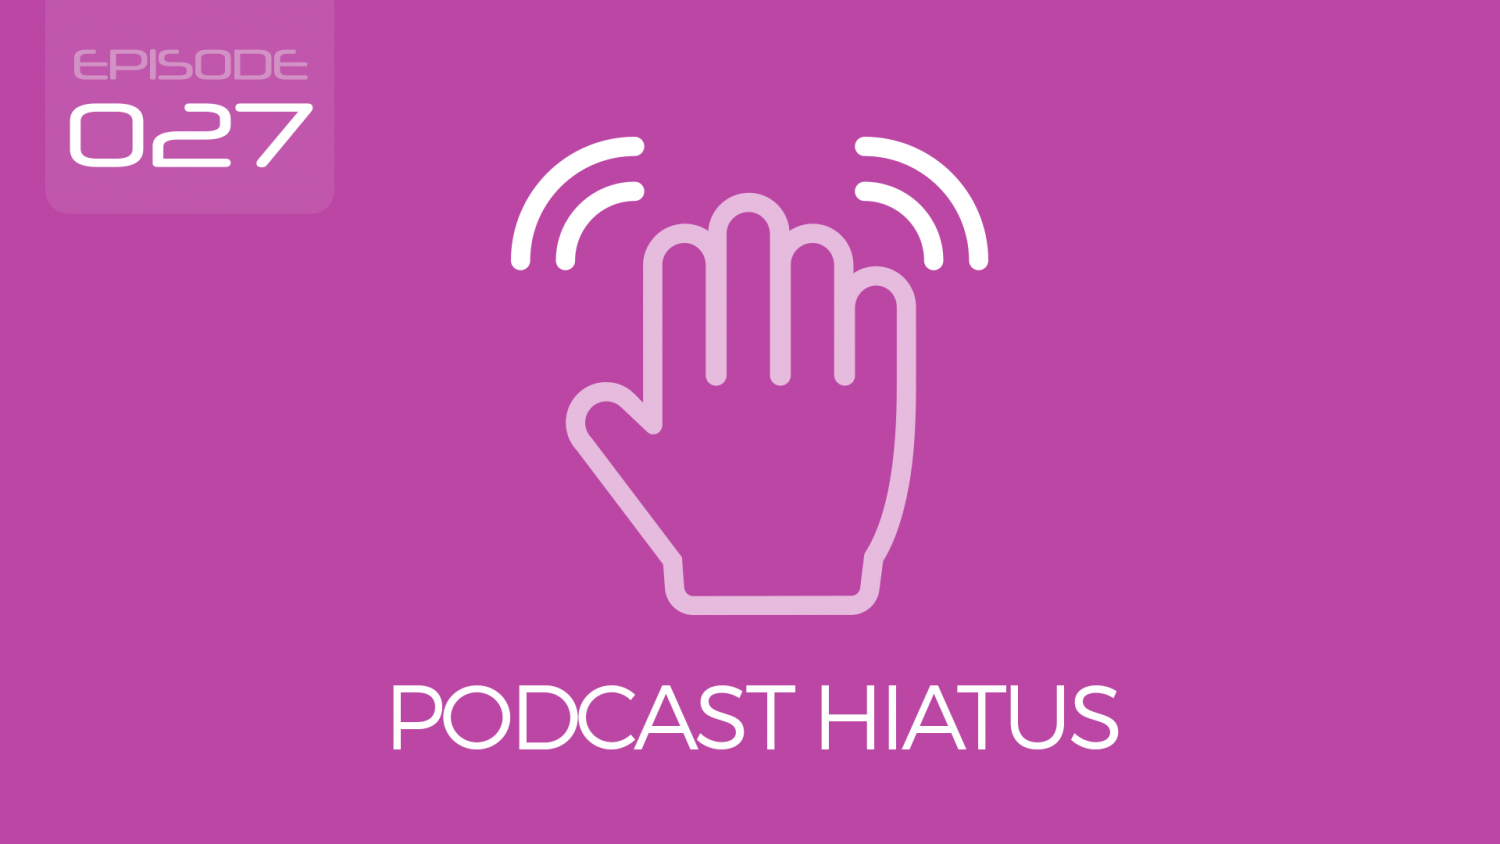 Episode 027 - Podcast Hiatus